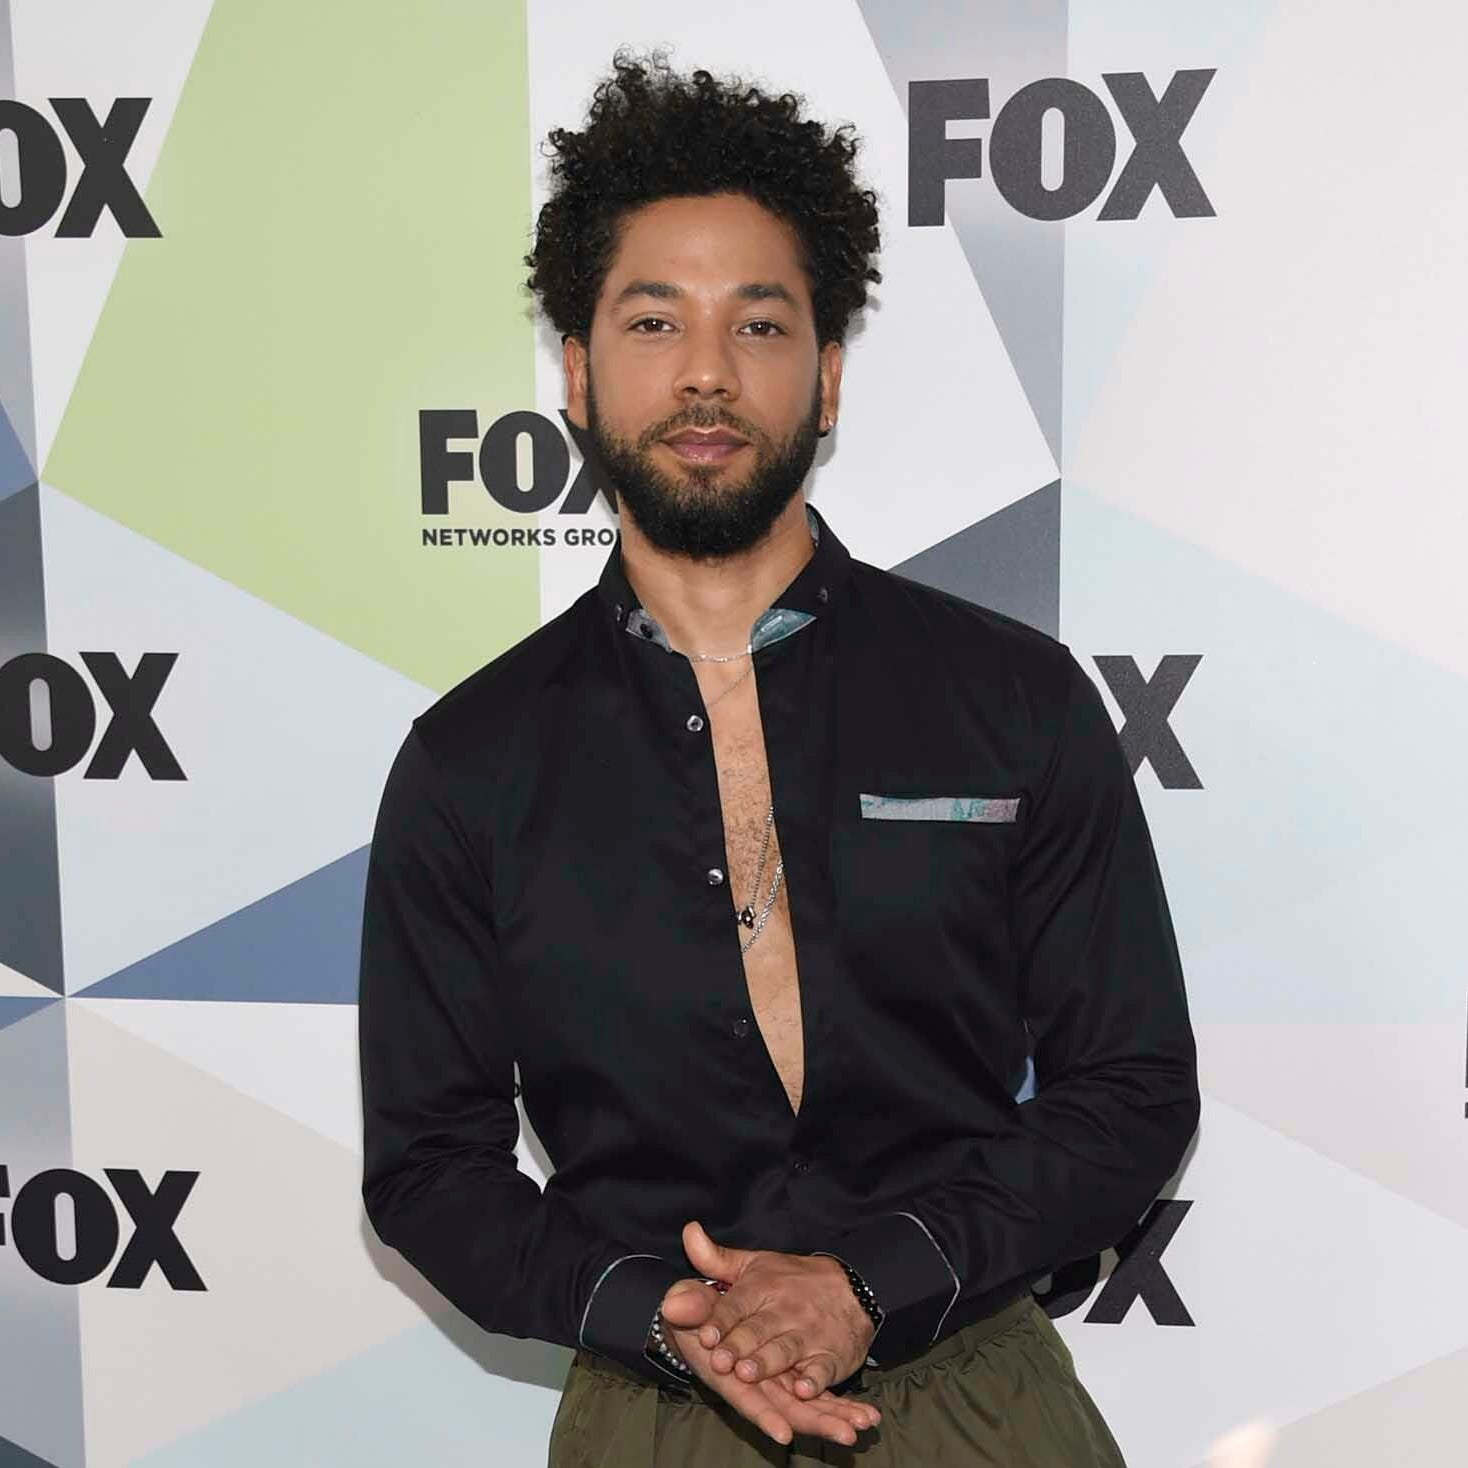 """""""I am working with authorities and have been 100% factual and consistent on every level,"""" Jussie Smollett said Friday in his first statement since the attack."""